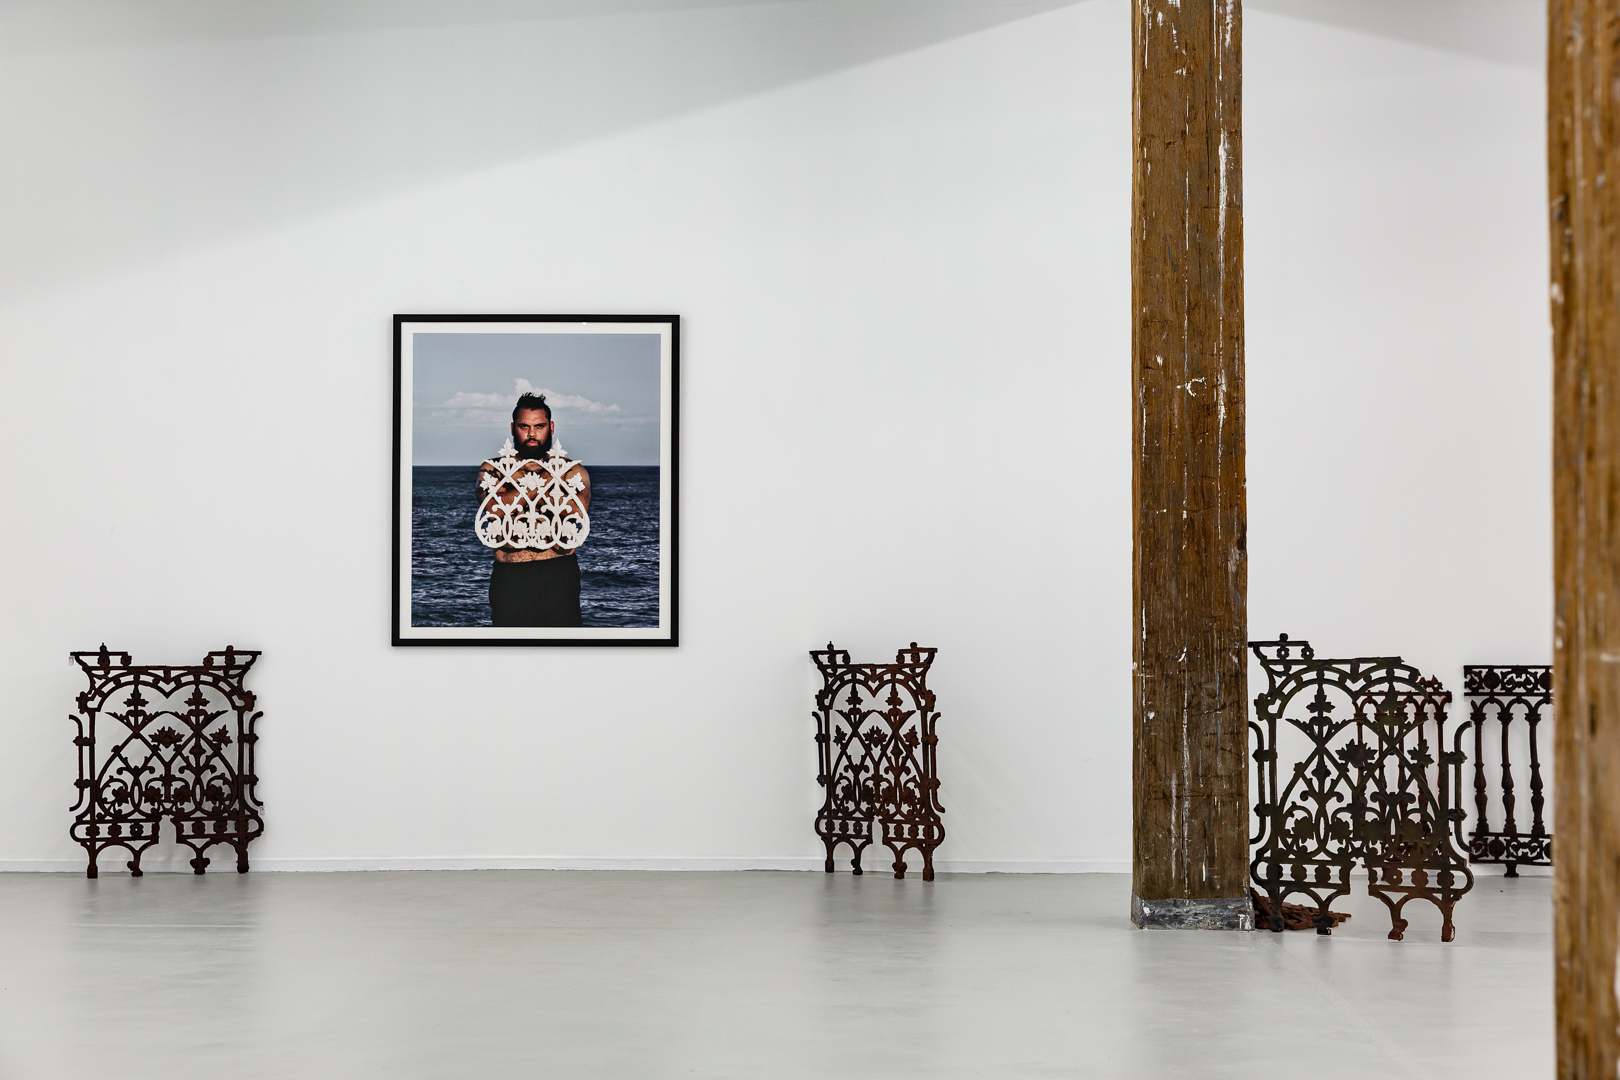 Dennis Golding, 'Cast in cast out', 2020, installation view, 2020 NSW VAEF, Artspace, Sydney. Photo: Document